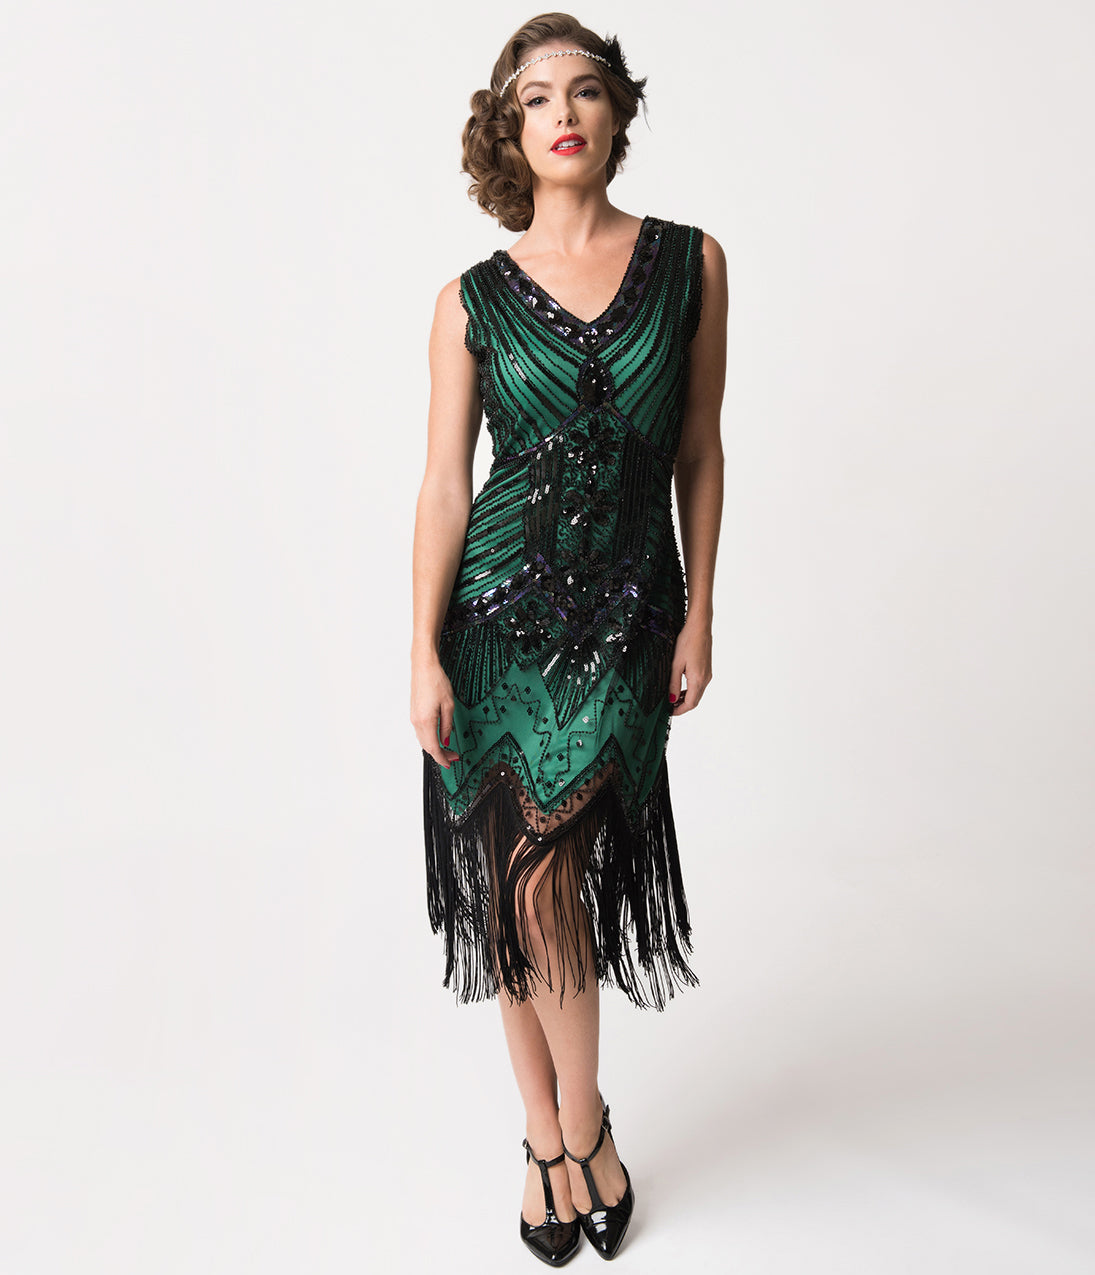 1920s Fashion & Clothing | Roaring 20s Attire Unique Vintage 1920S Deco Green  Black Sequin Veronique Fringe Flapper Dress $98.00 AT vintagedancer.com